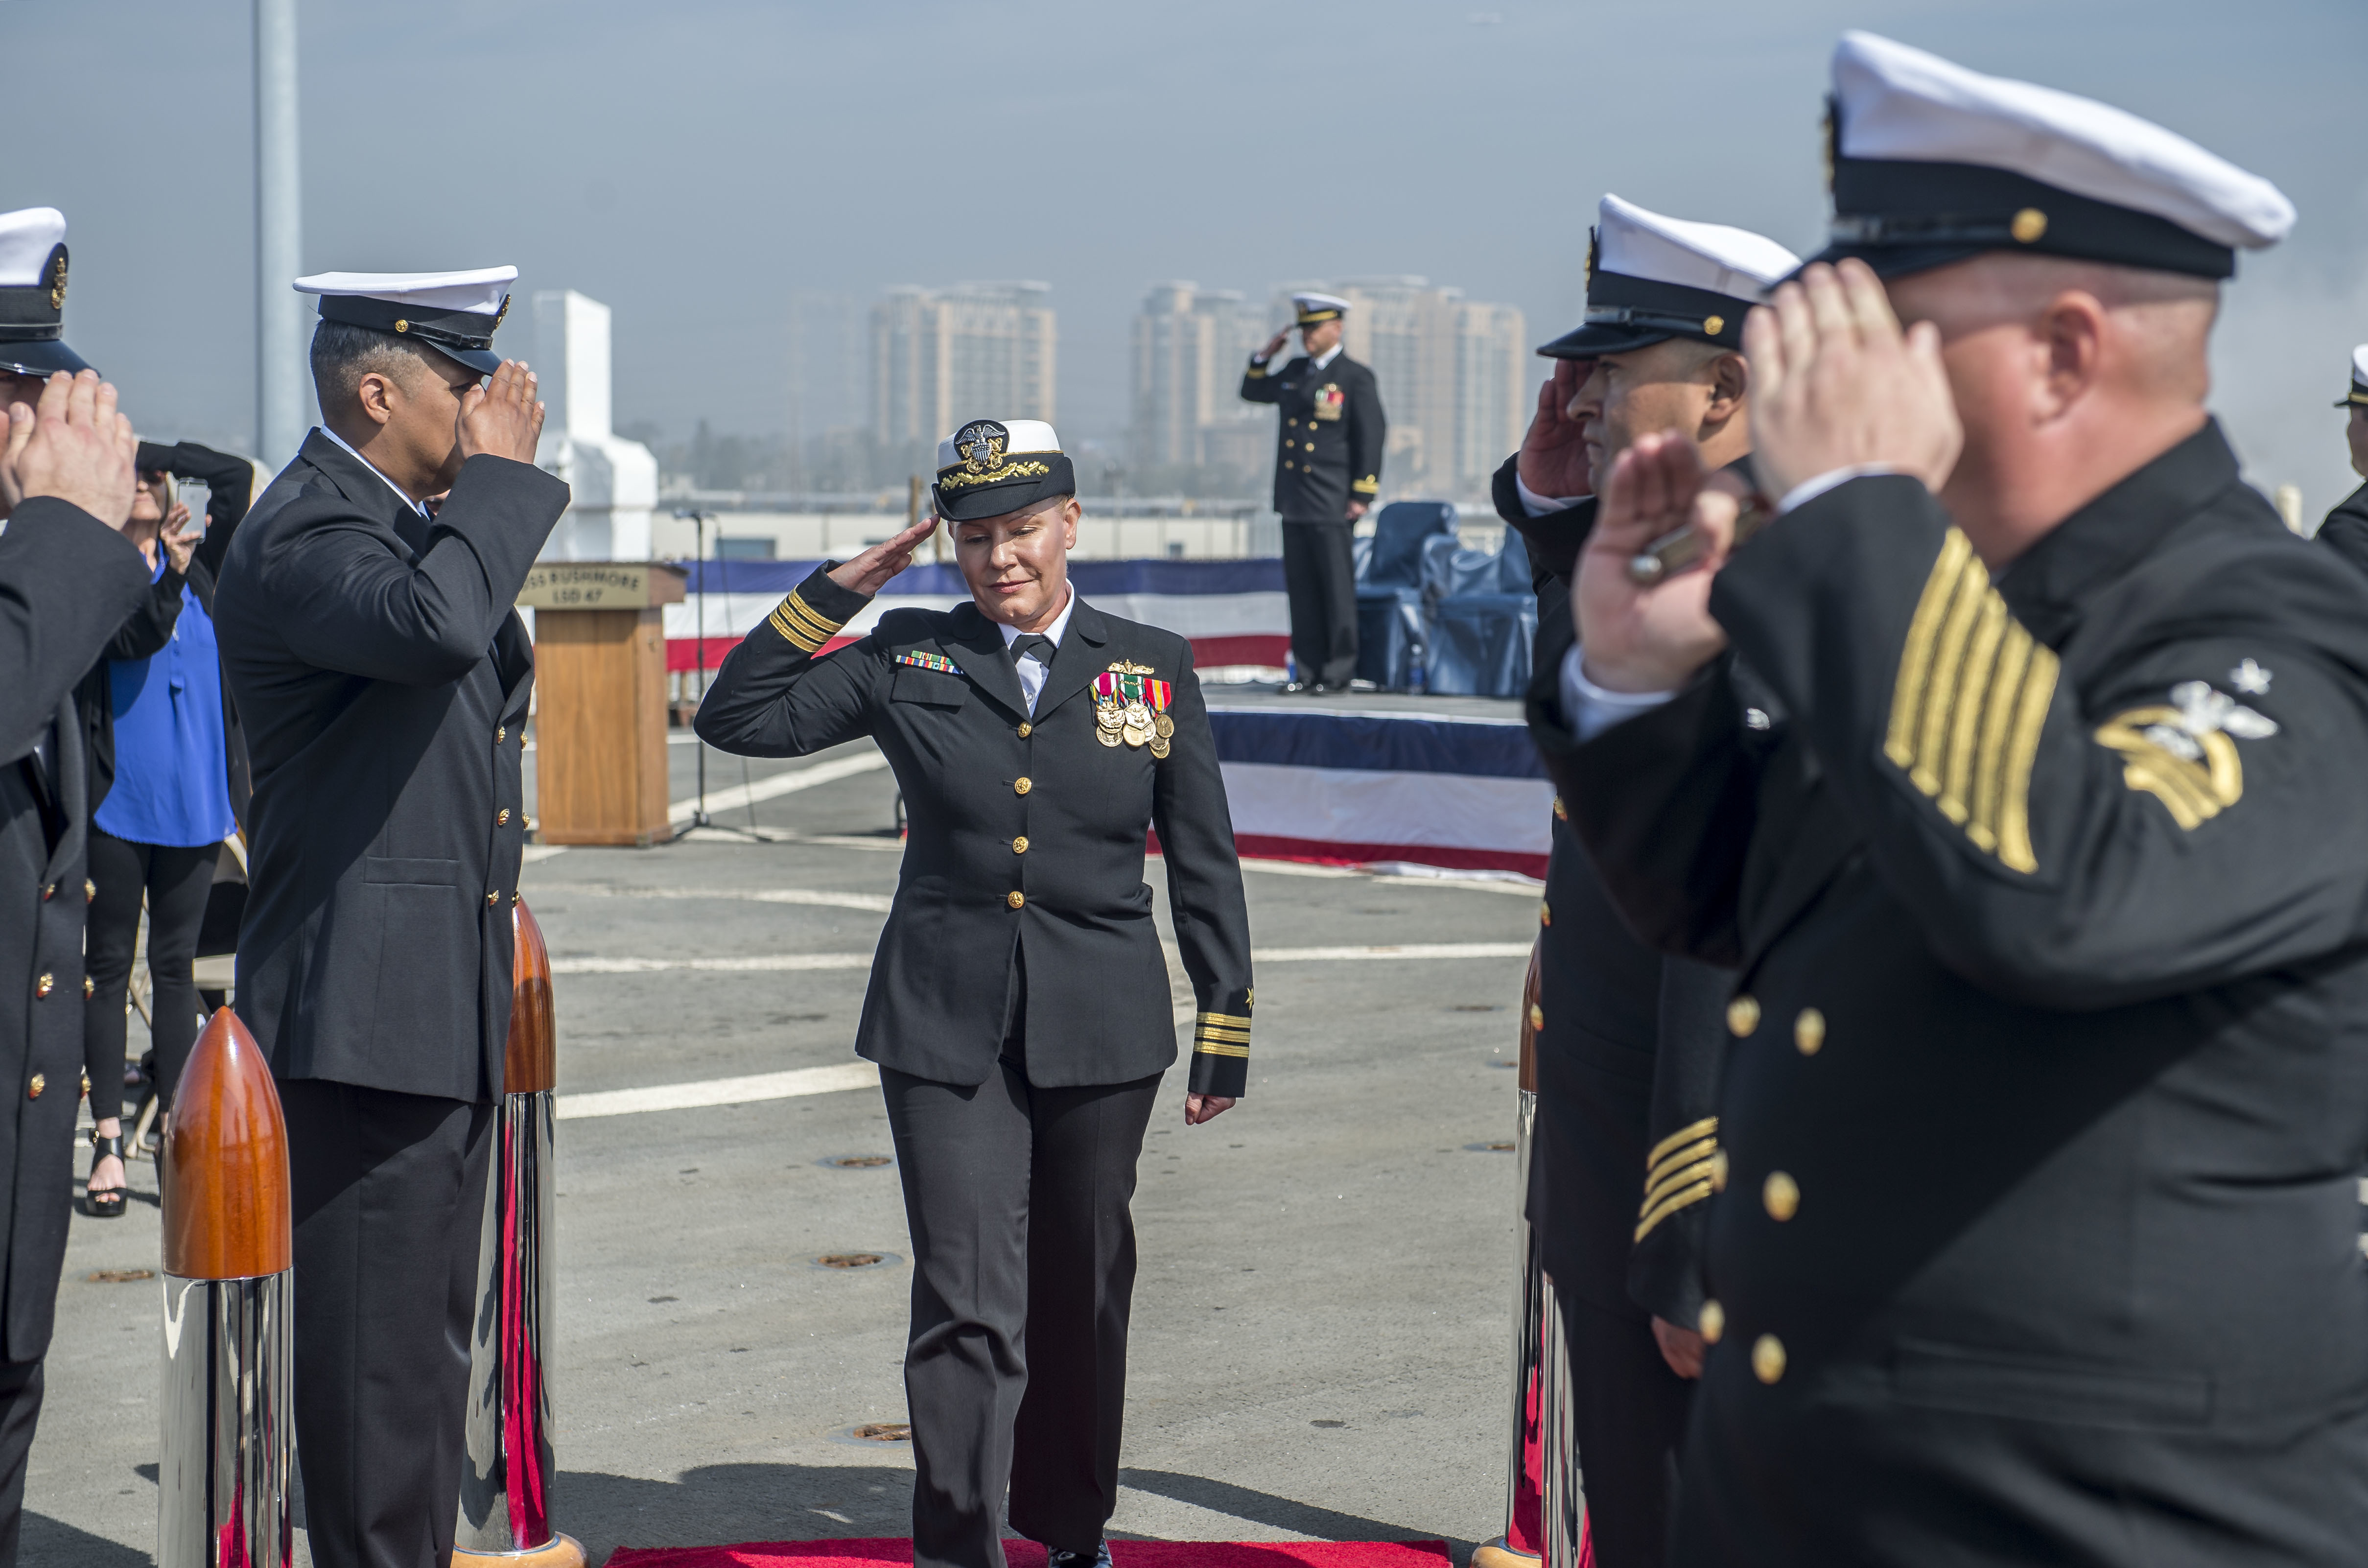 SAN DIEGO (Mar. 1, 2016) – Cmdr. Sarah H. De Groot, commanding officer of the amphibious dock landing ship USS Rushmore (LSD 47), salutes side boys during a change of command ceremony. (U.S. Navy photo by Mass Communication Specialist 3rd Class Gerald Dudley Reynolds/Released)